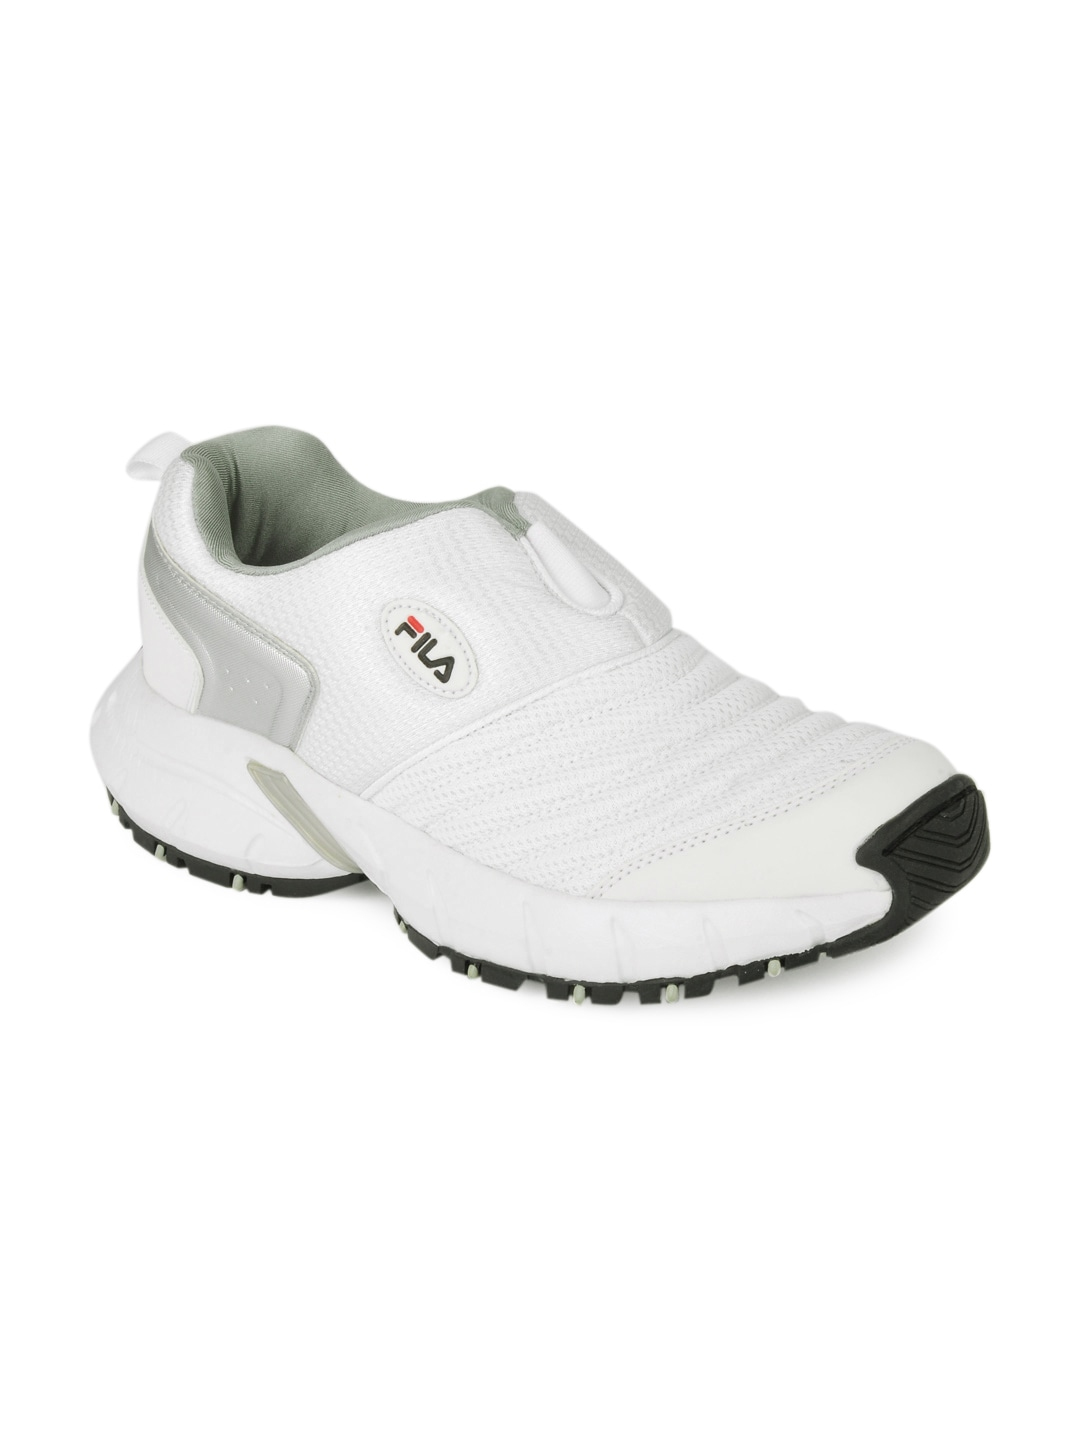 Are White Men S Shoes In Style